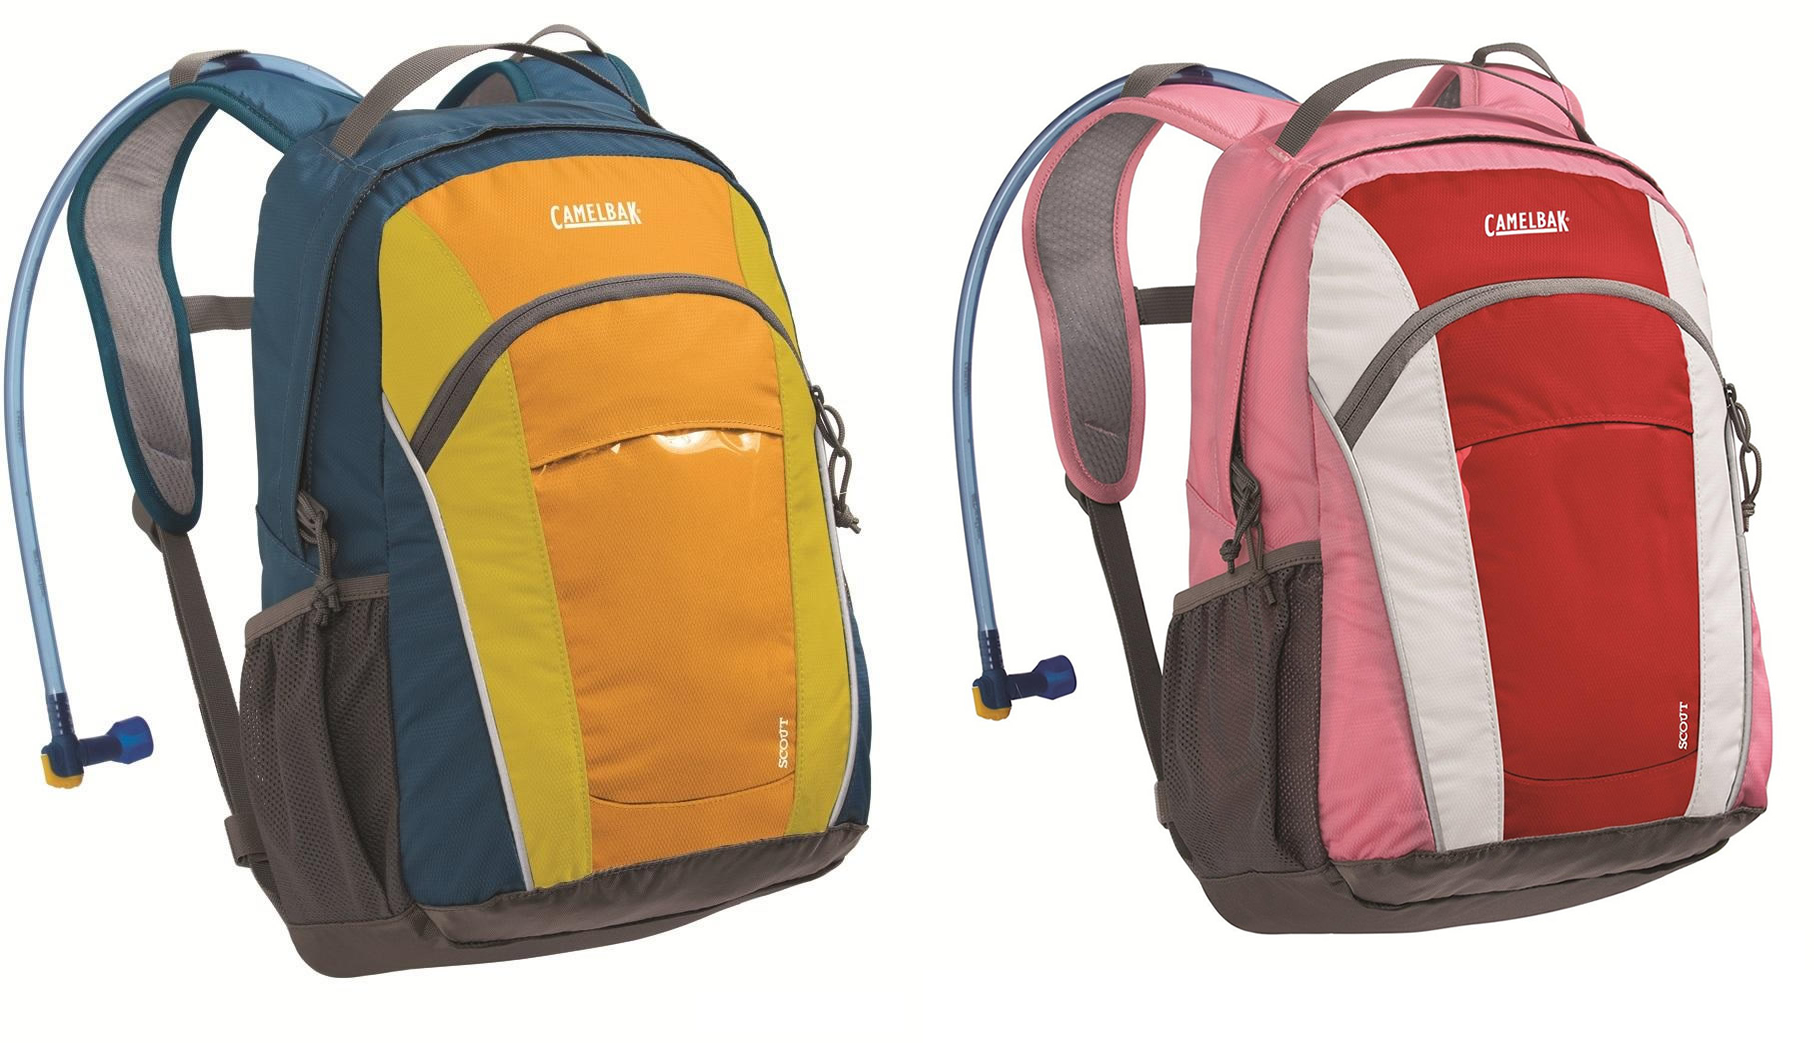 Camelbak-Scout-Hydration-Backpack-with-Bladder